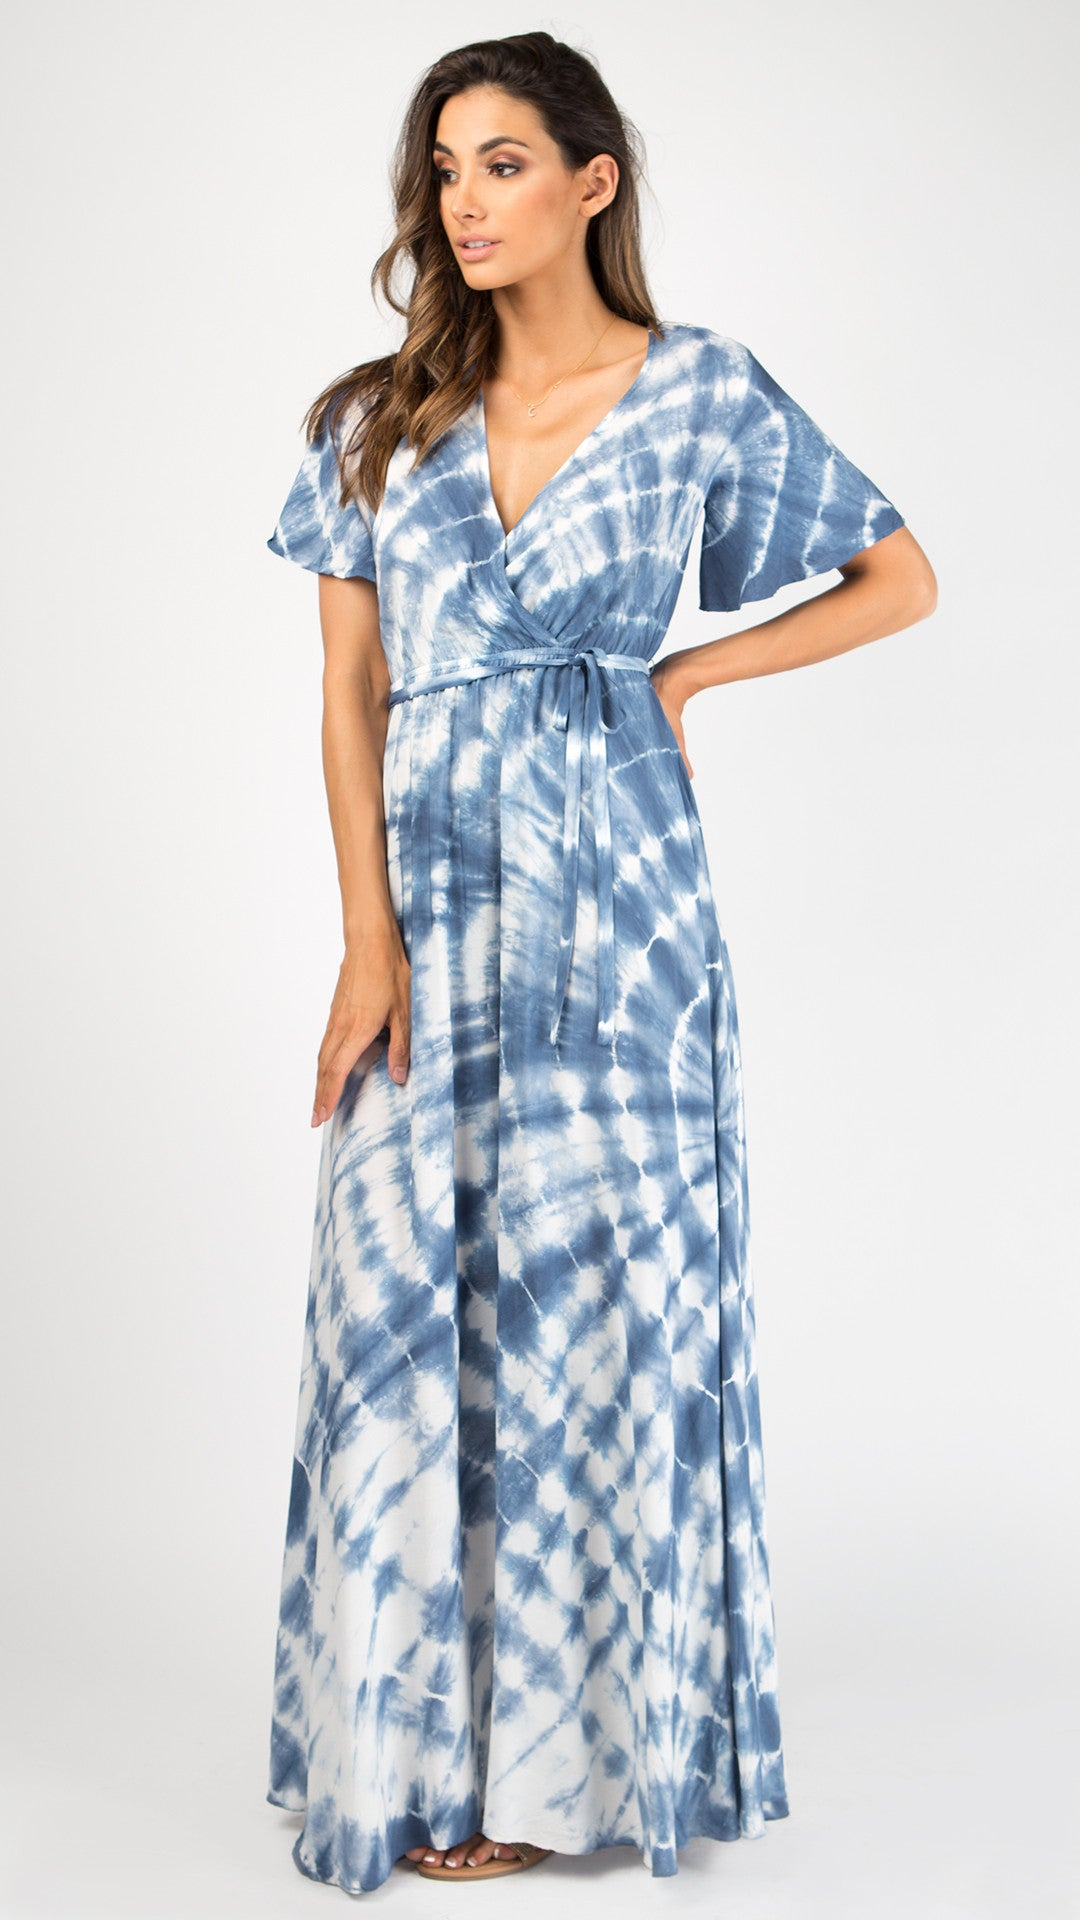 Short Bell Sleeve Tie Dye Maxi Dress Angl